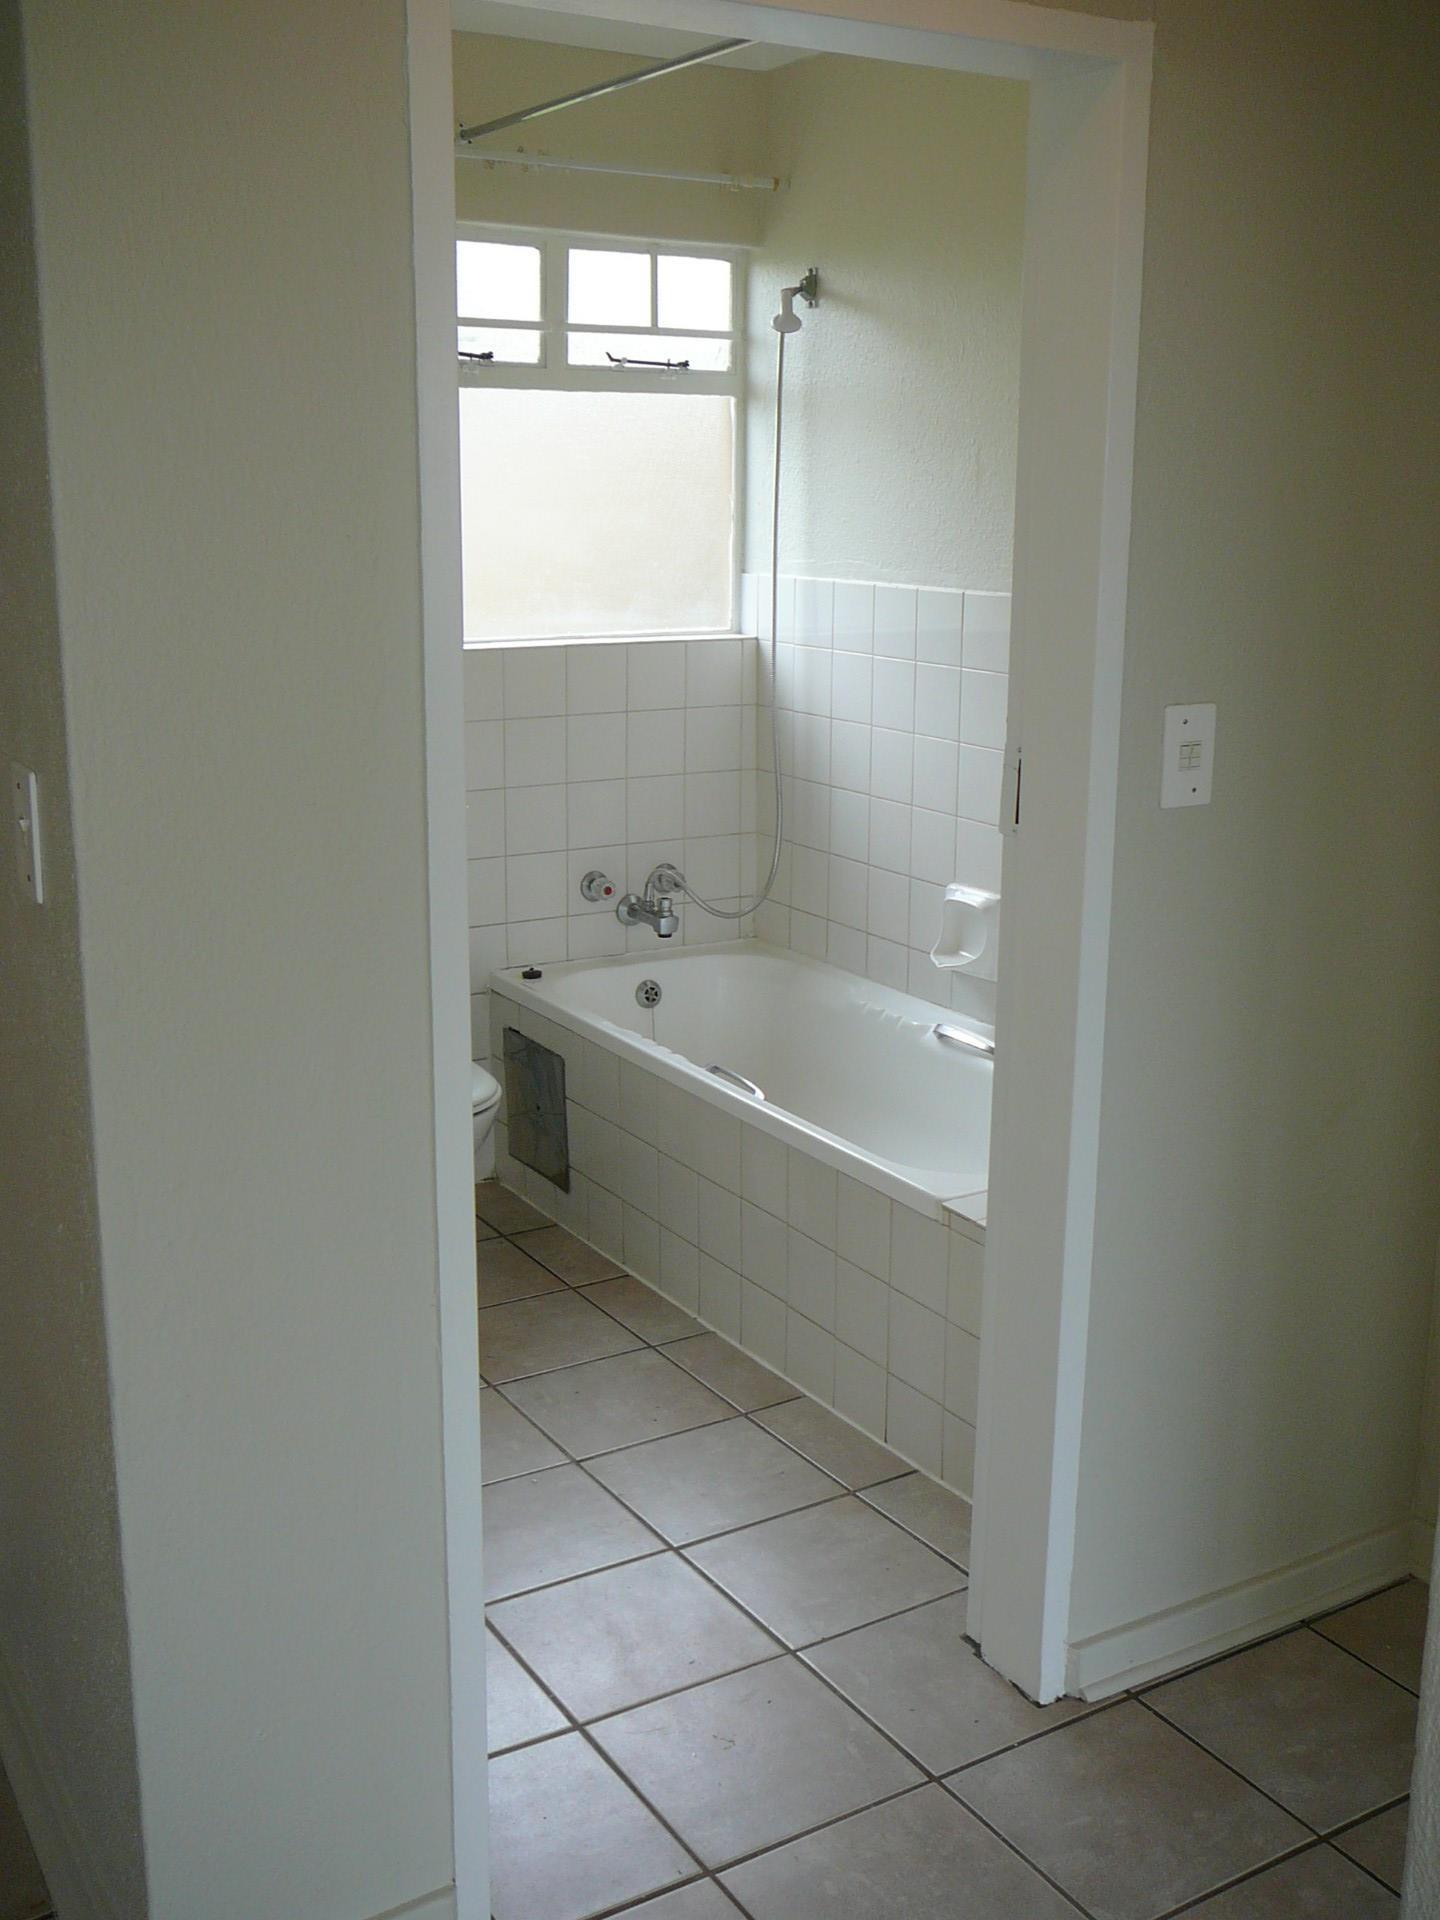 2 Bedroom Townhouse For Sale in Edenvale Central